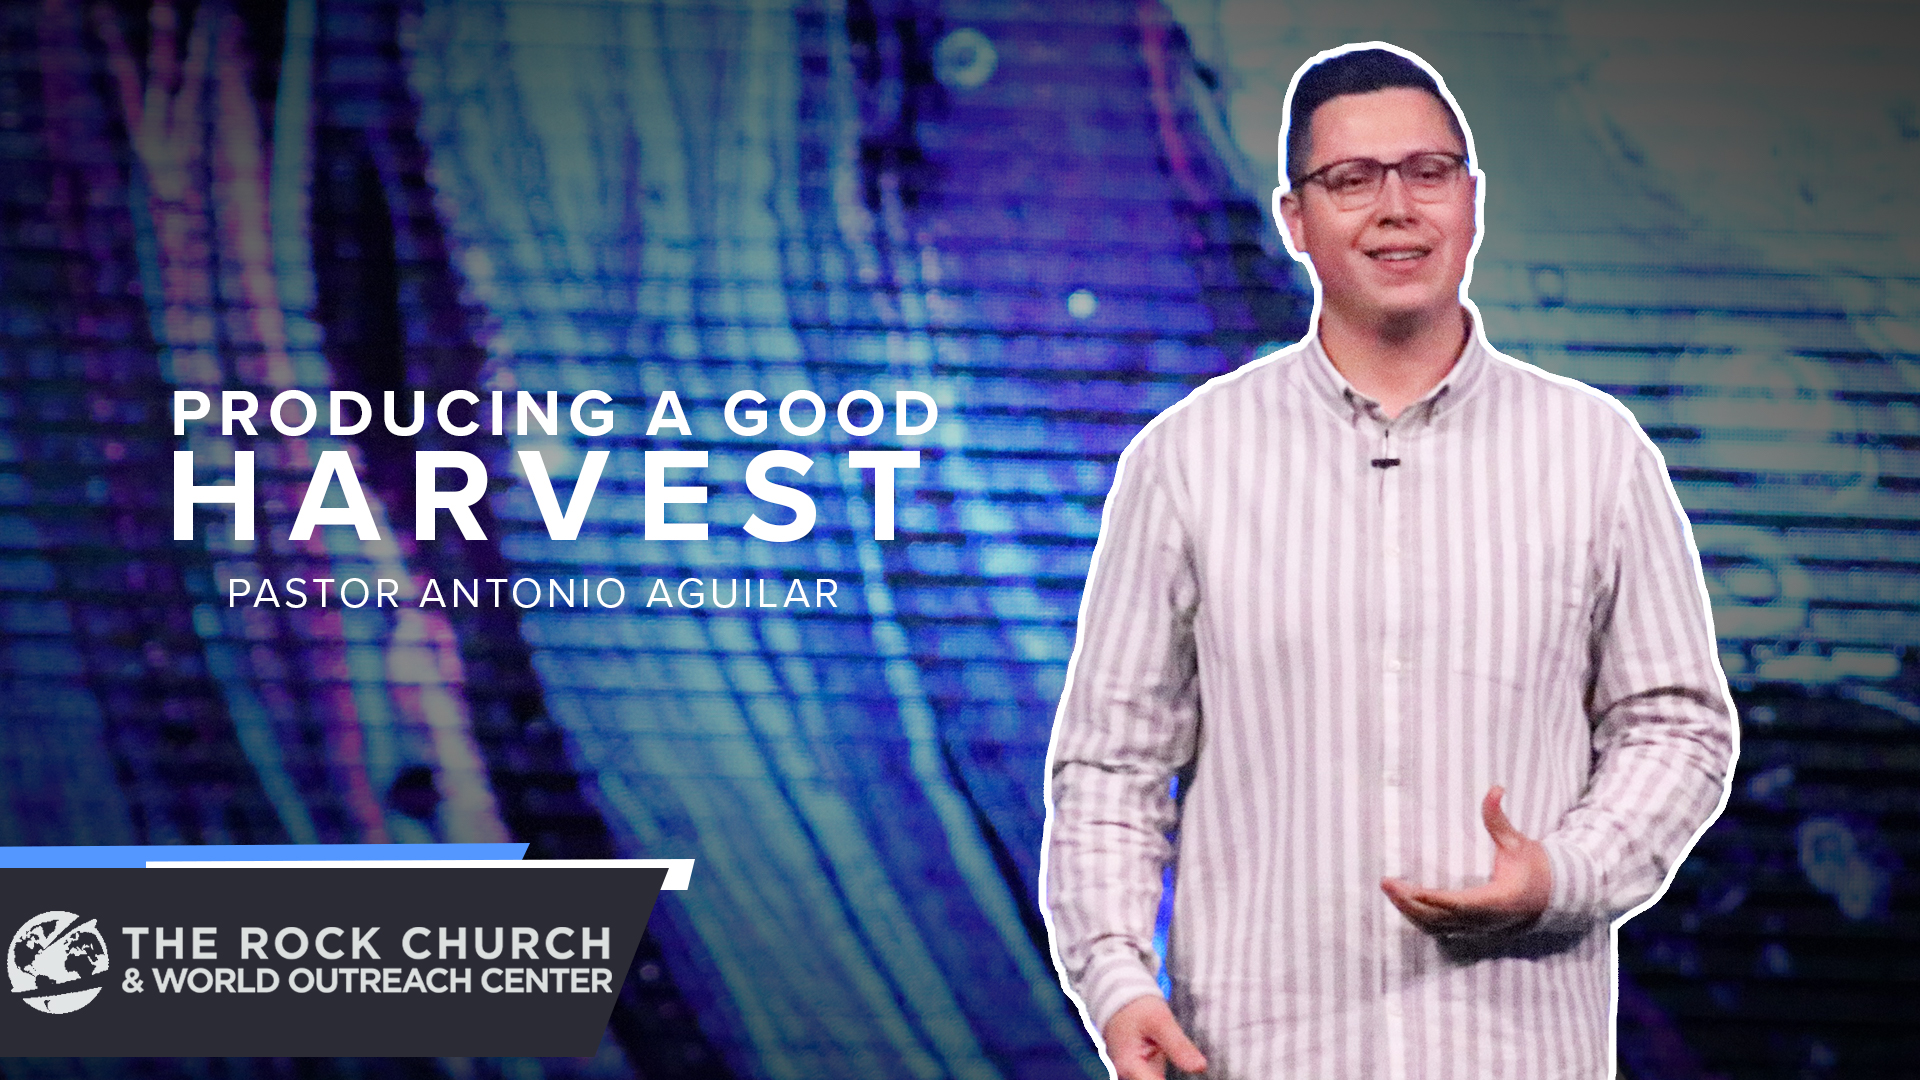 Watch Producing A Good Harvest